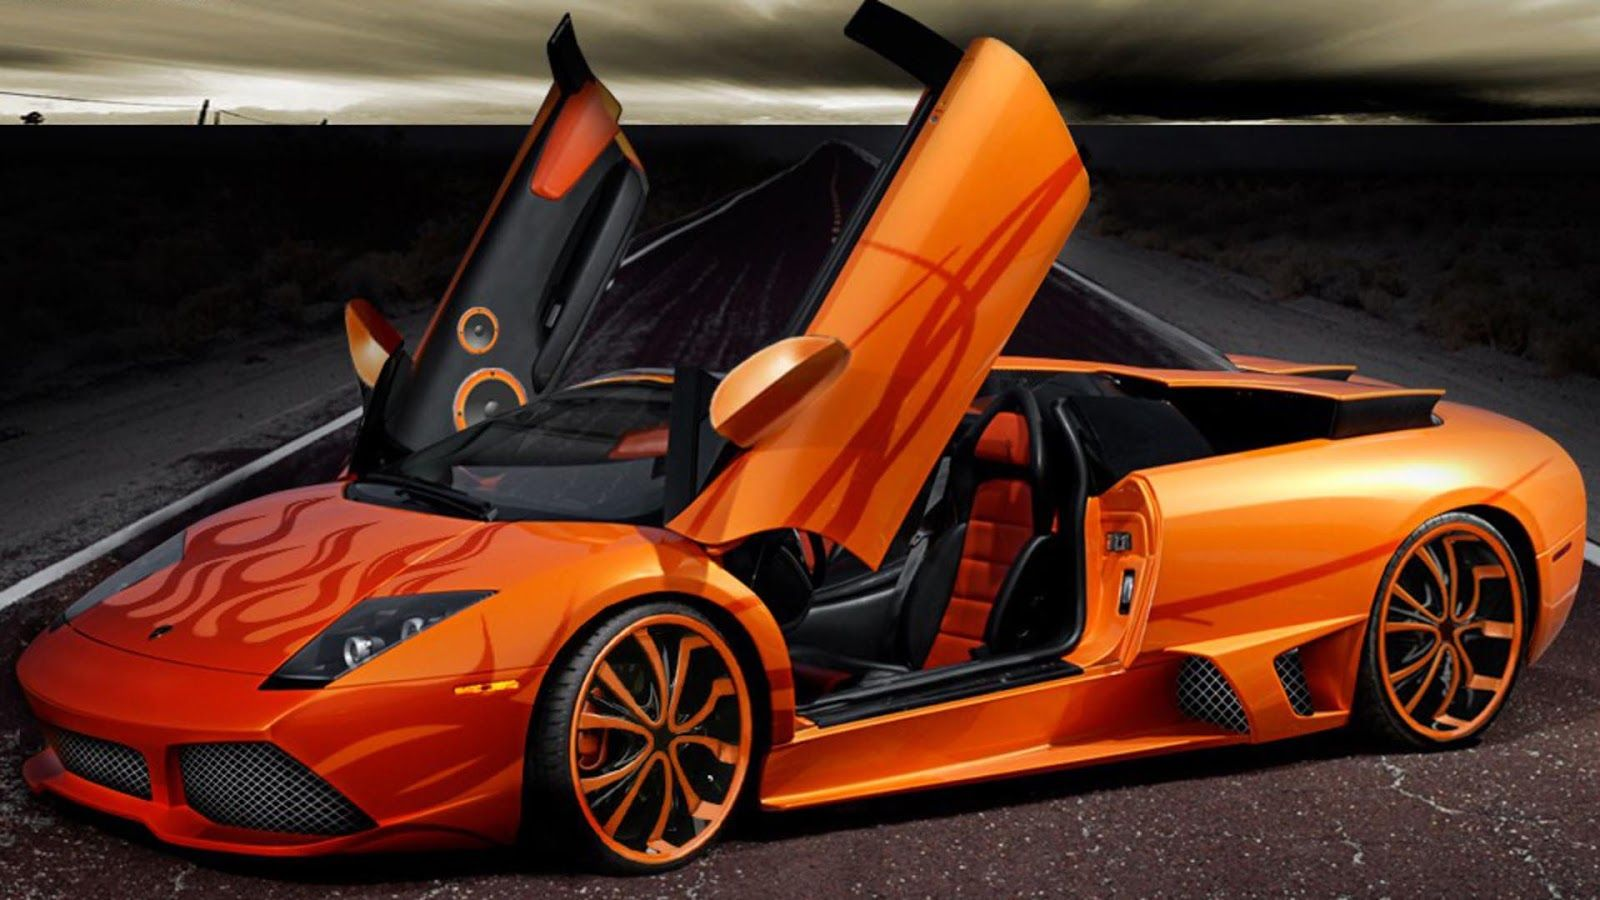 Latest Lamborghini Cars Price List January 2016 Lamborghini